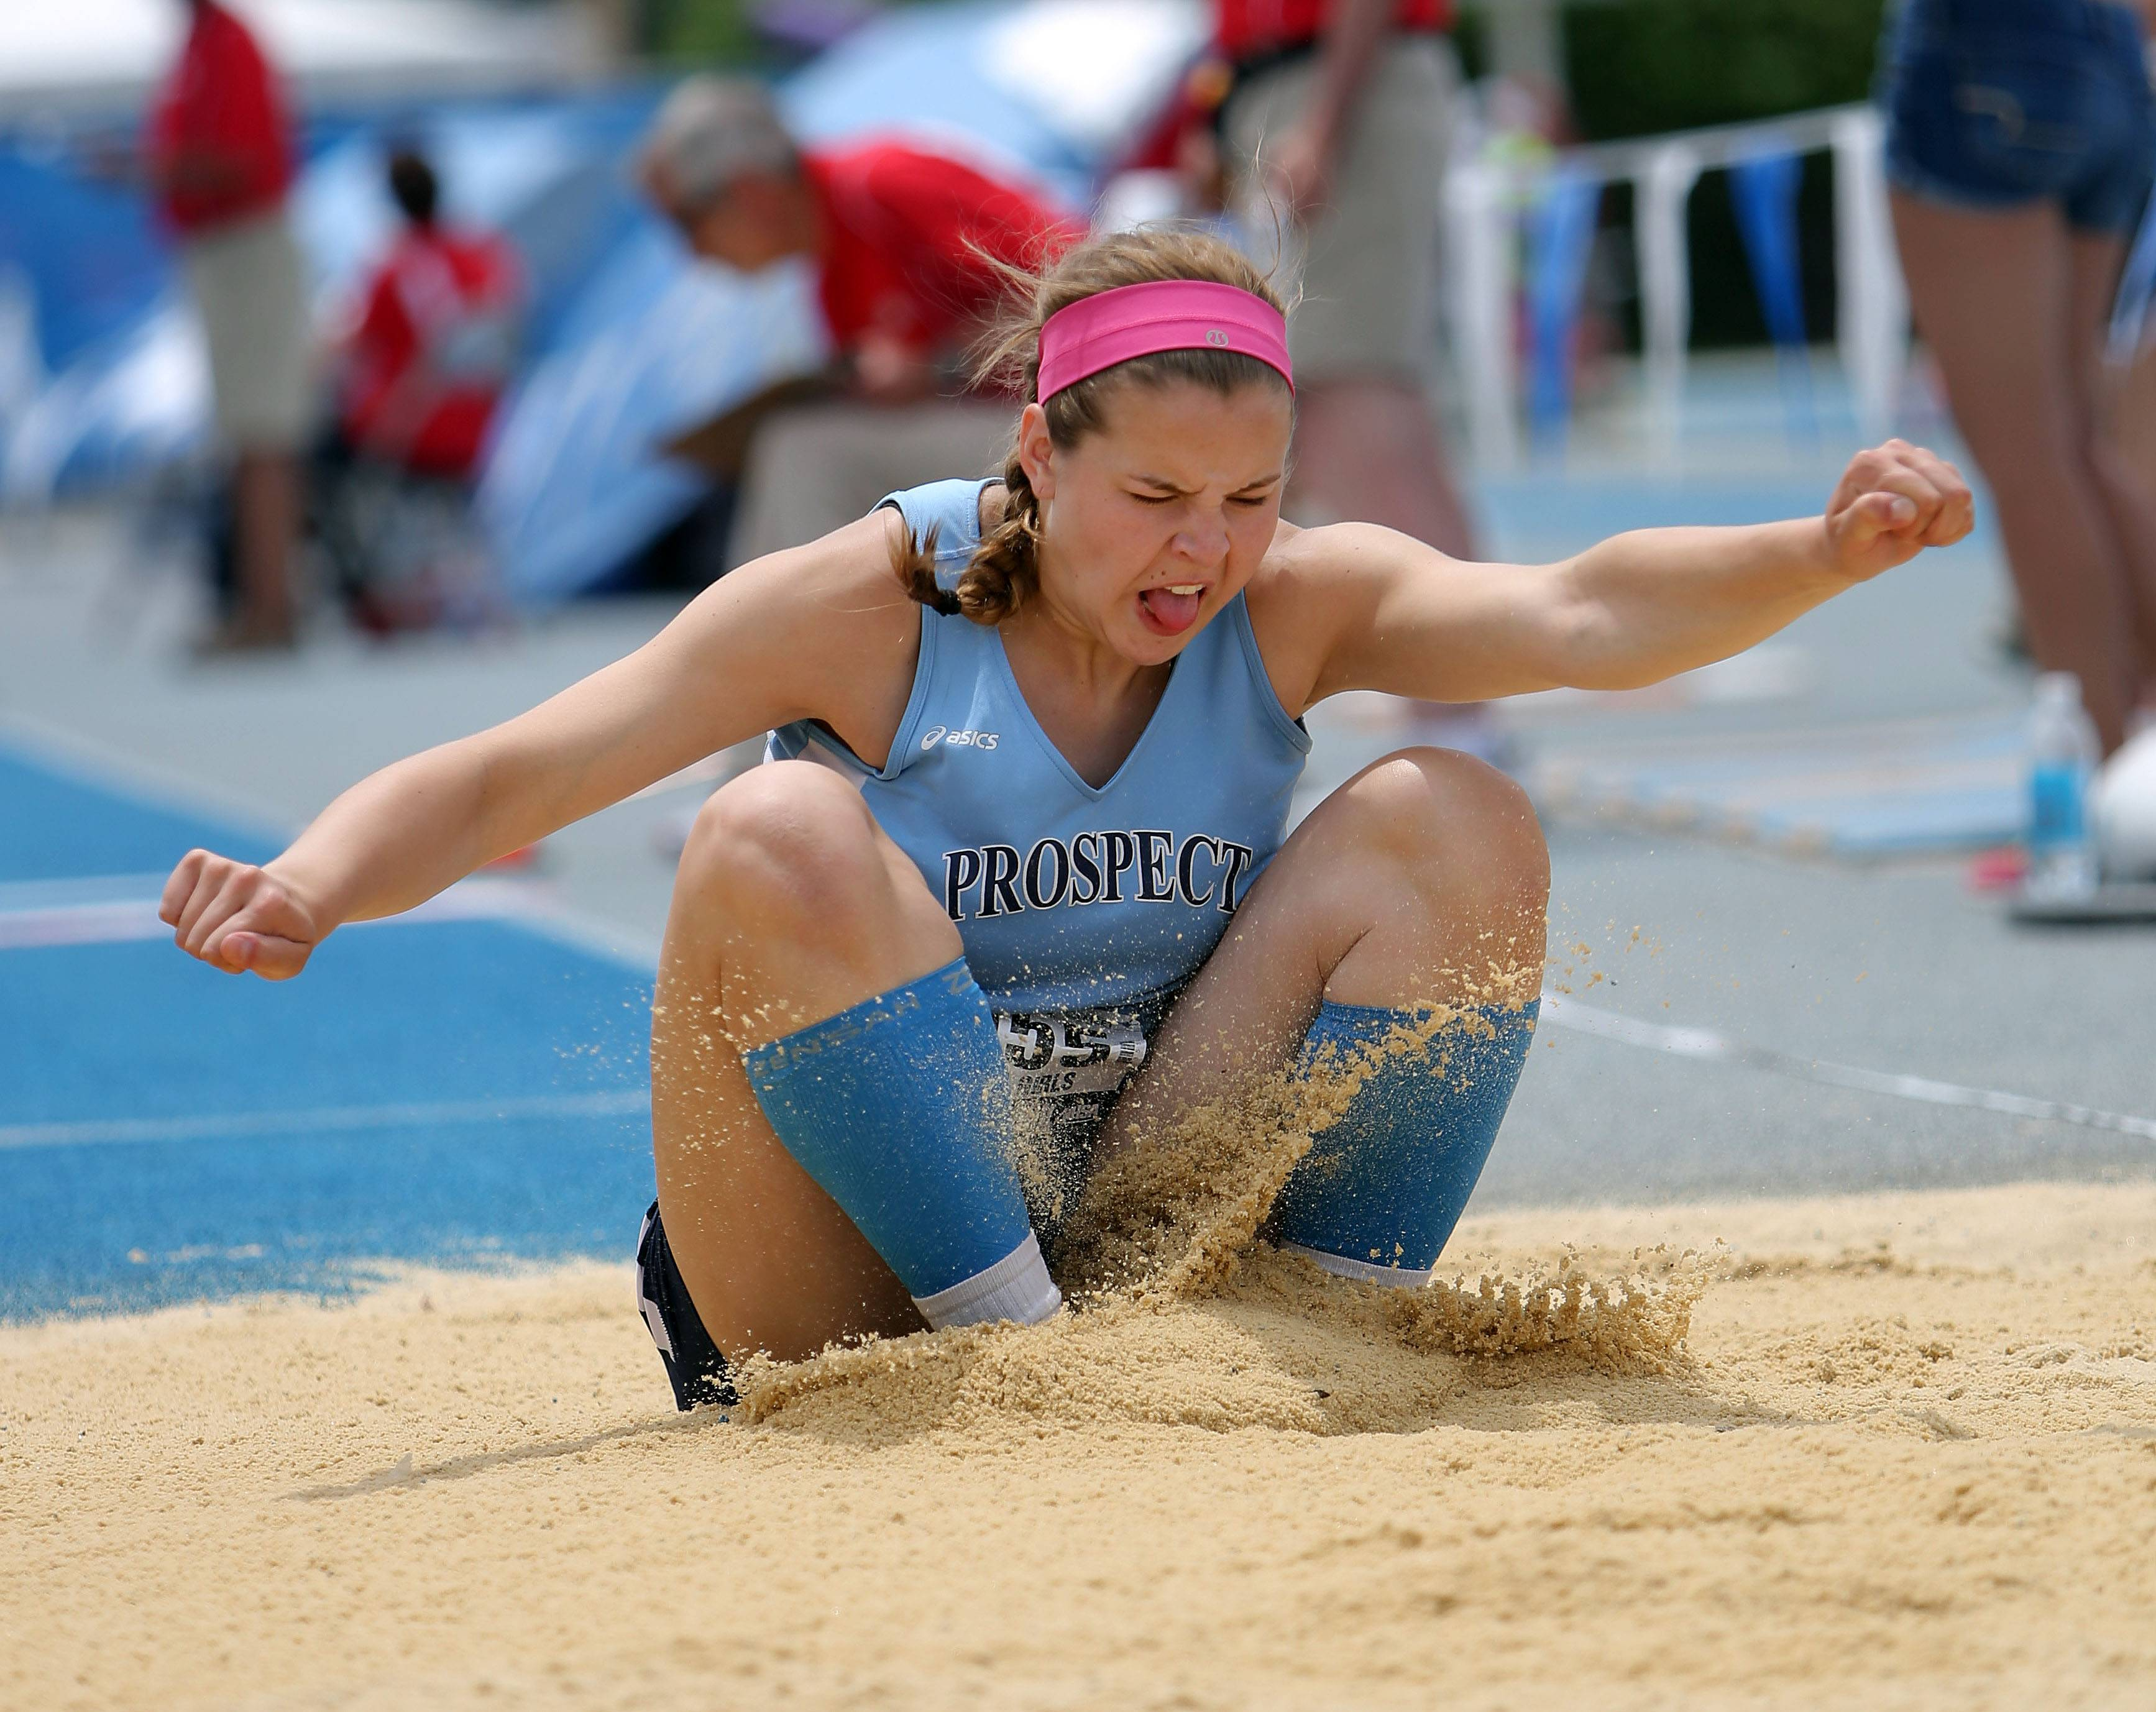 Prospect's Catherine Sherwood competes in the Class 3A triple jump during the girls track and field state finals at Eastern Illinois University in Charleston on Saturday.